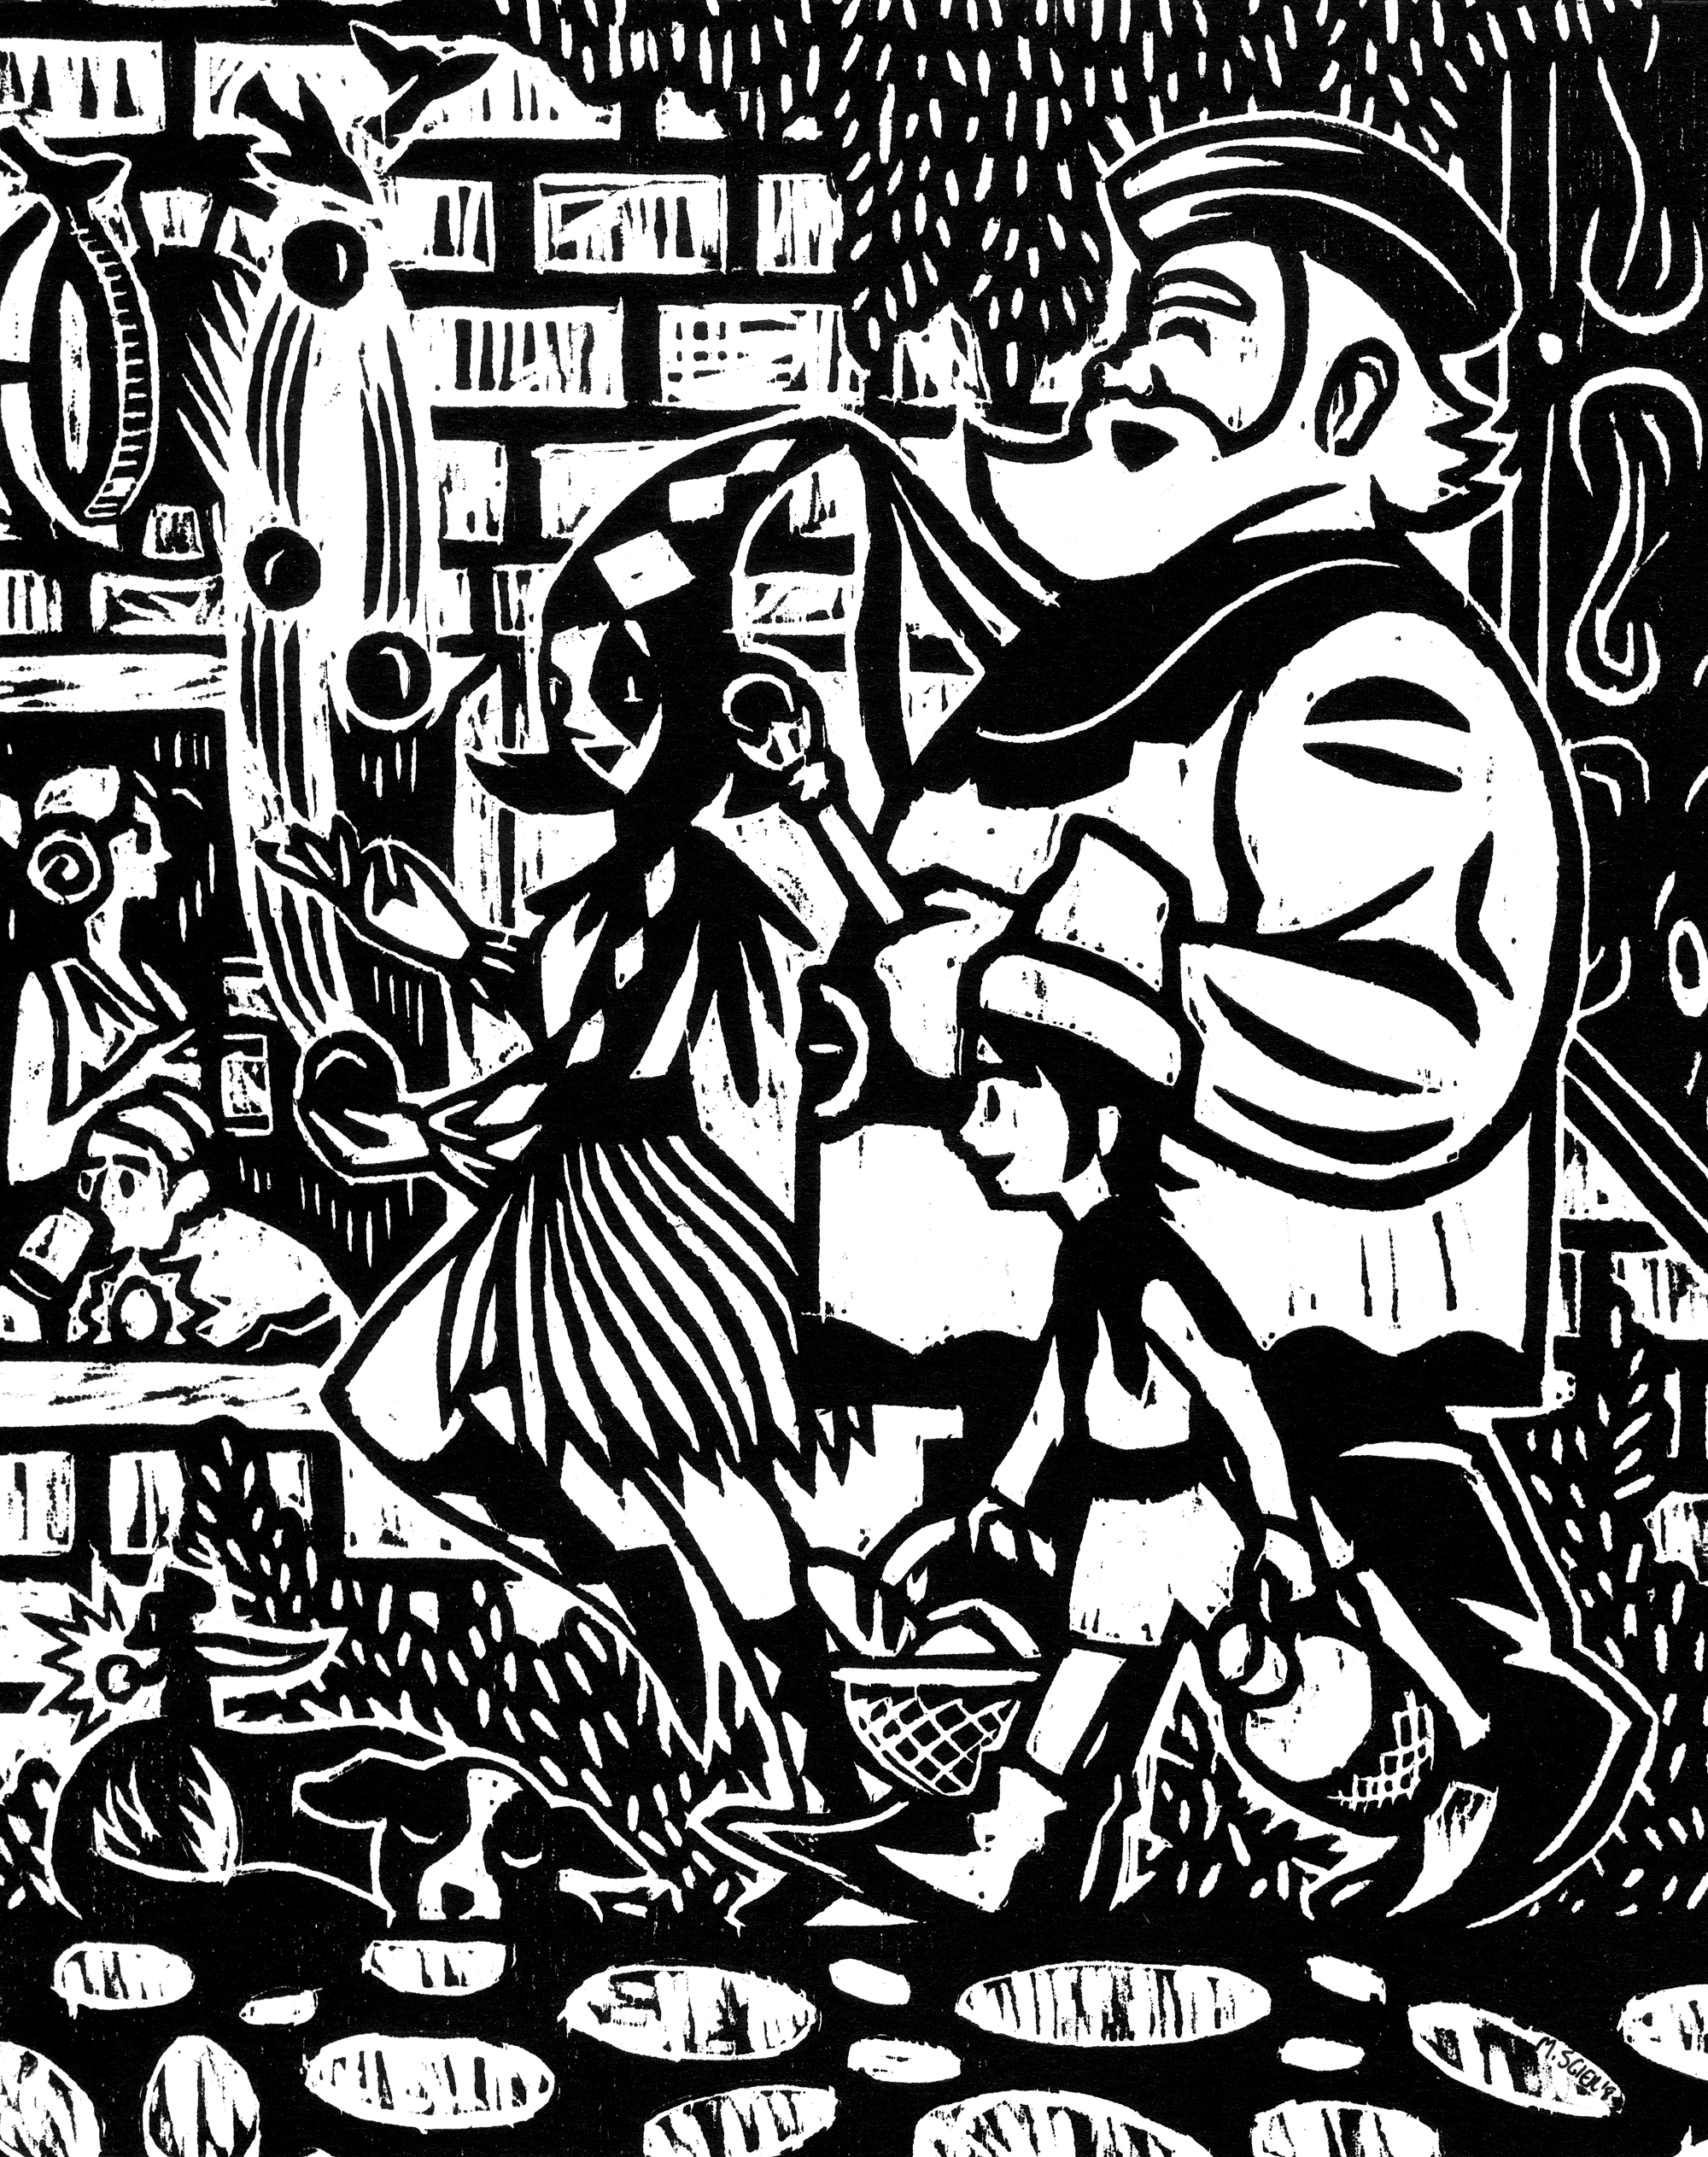 Streets of Tiega no. 3  woodcut relief print